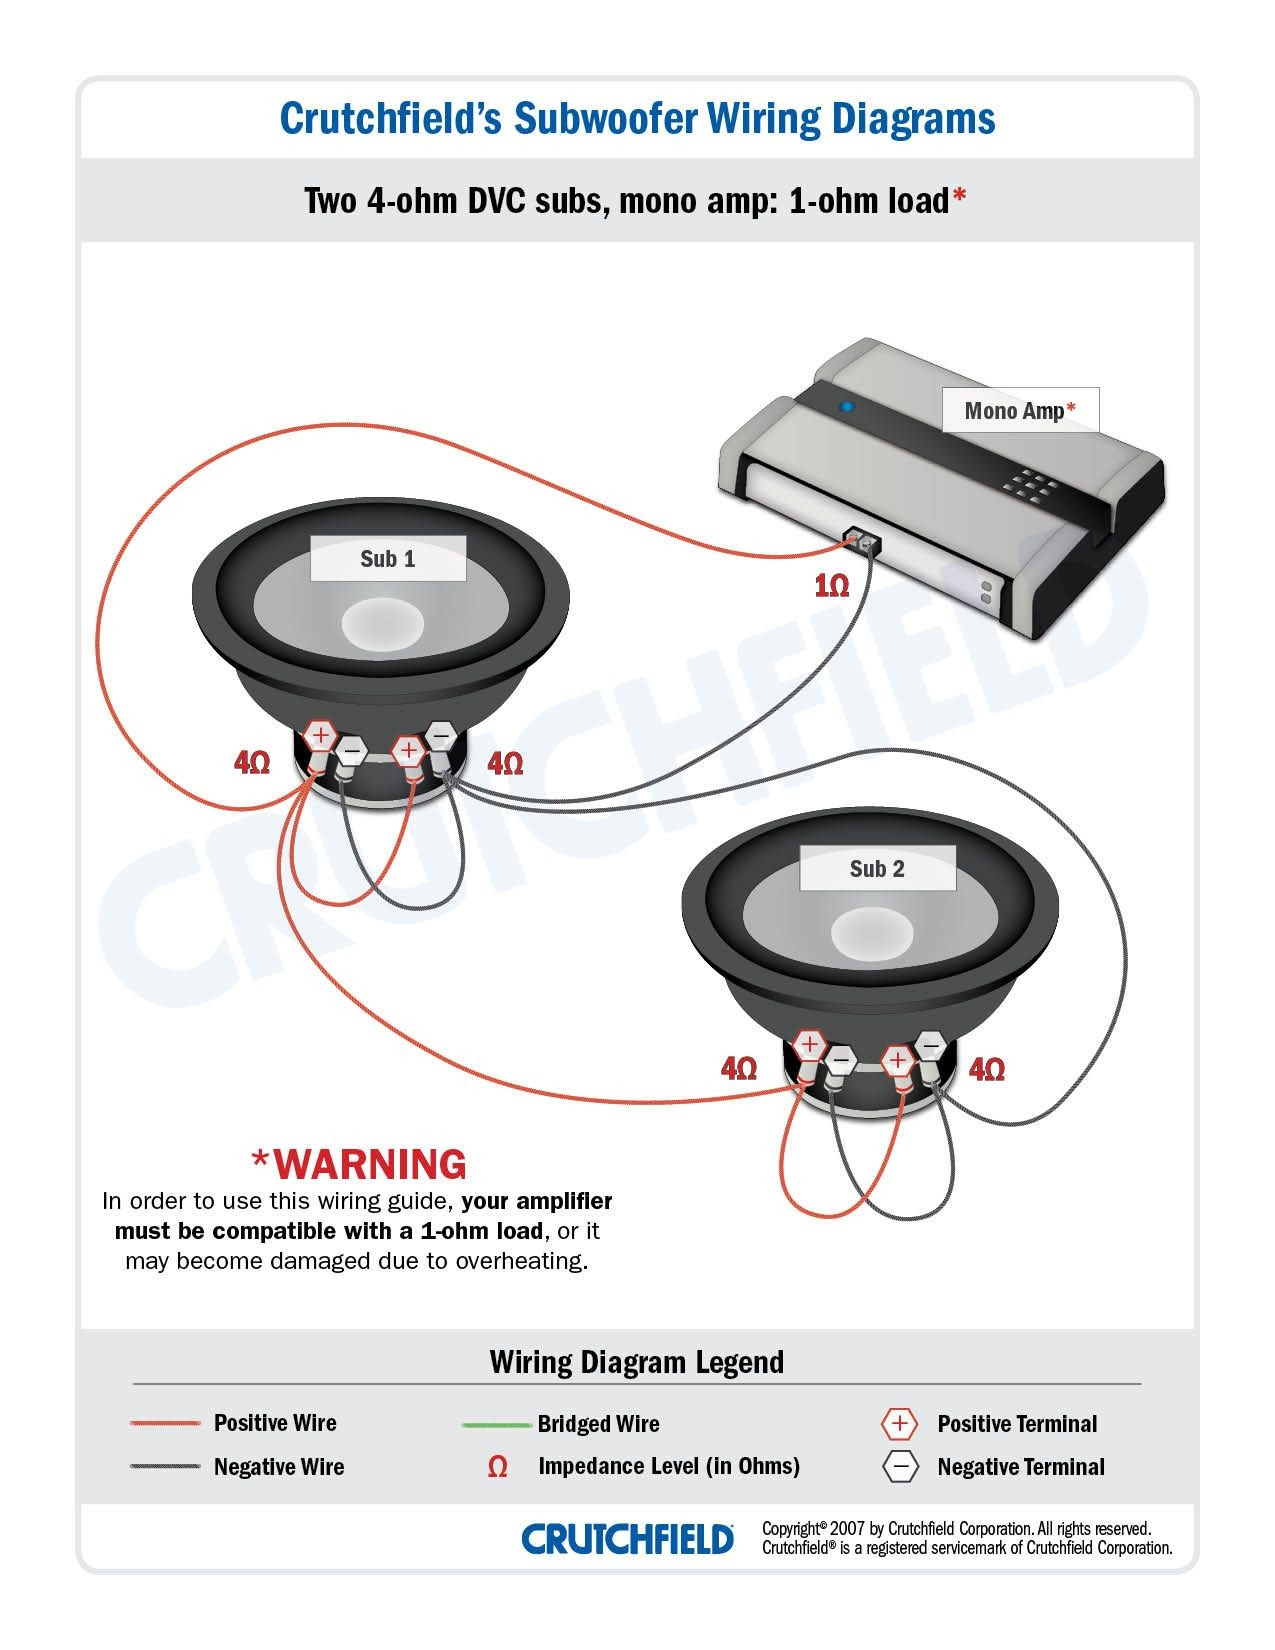 Car Audio Crossover Installation Diagram 2 Dvc 4 Ohm Mono Low Imp 1275—1650 Audio Pinterest Of Car Audio Crossover Installation Diagram